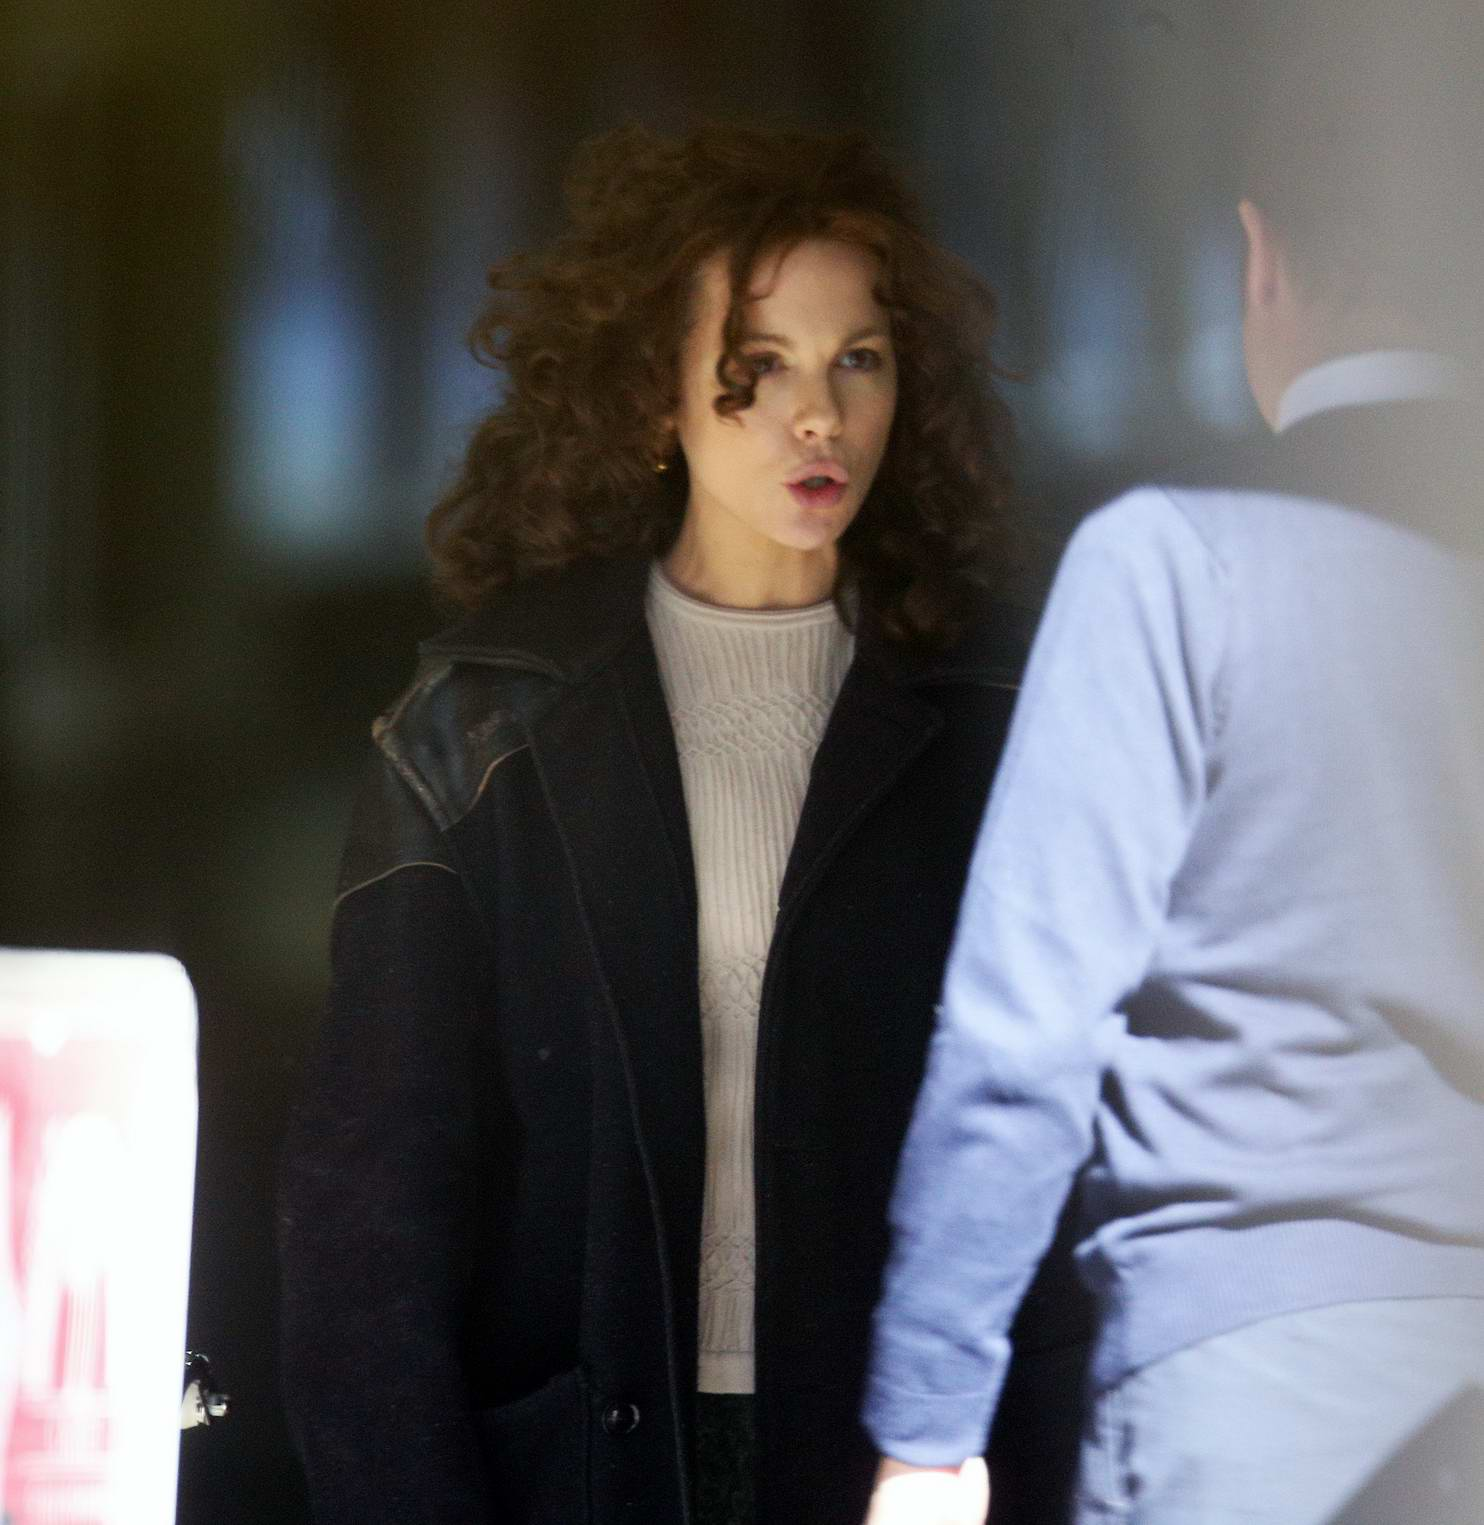 Kate Beckinsale dressed down with frizzy hair while filming new movie 'Farming' in London